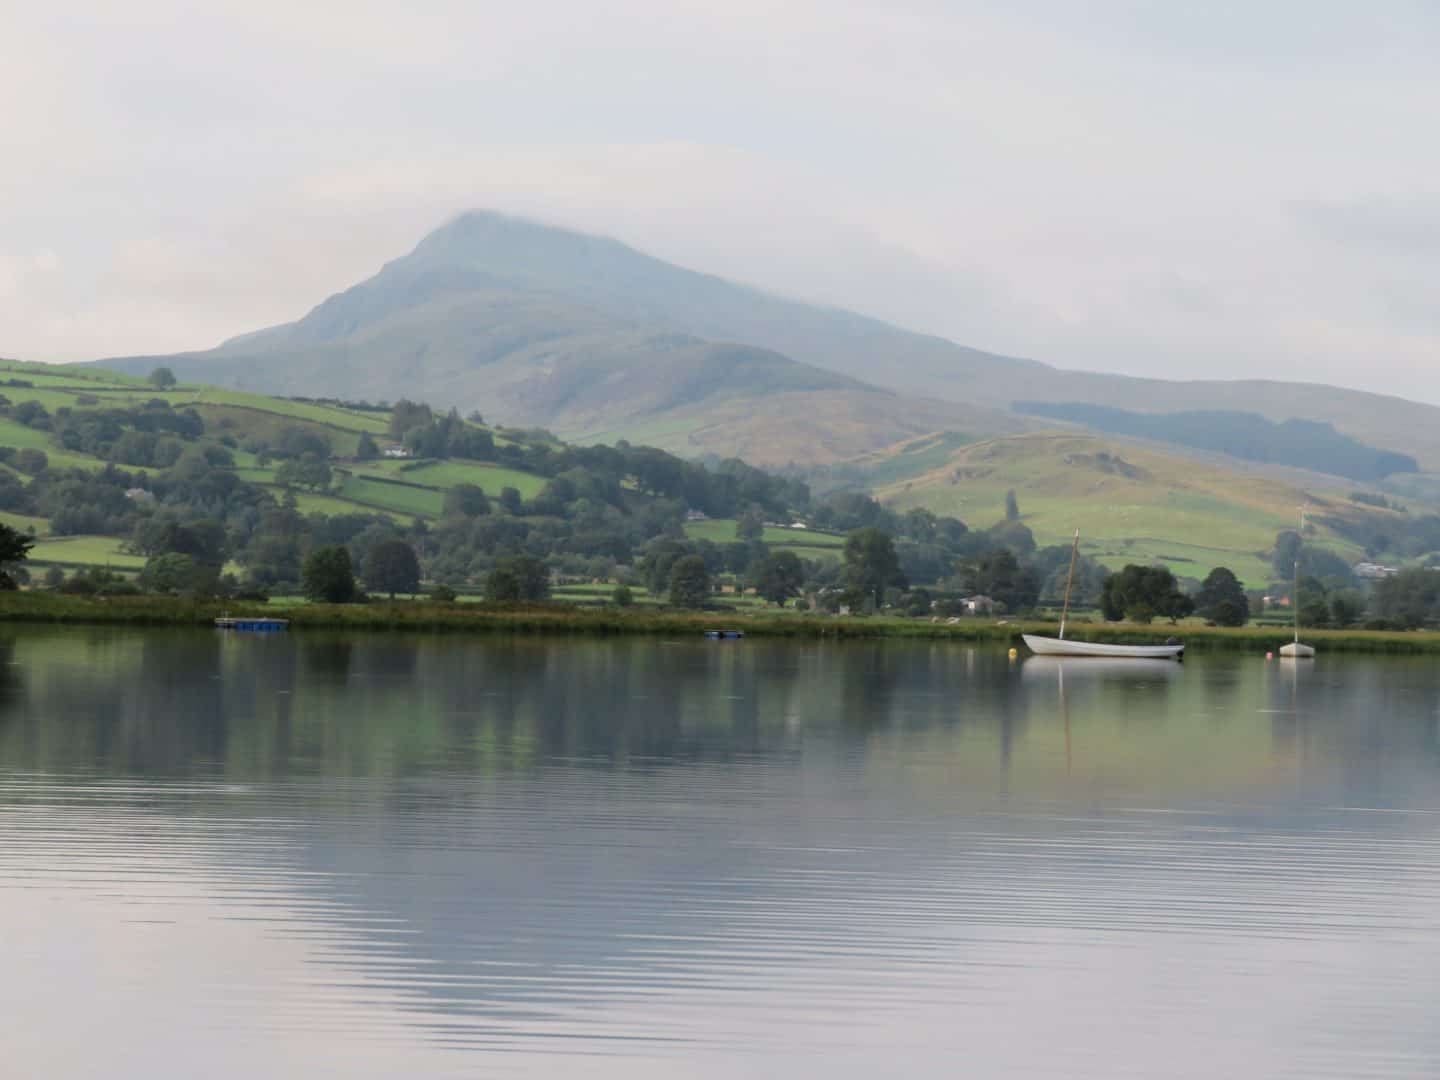 A dog friendly family holiday at Lake Bala in North Wales